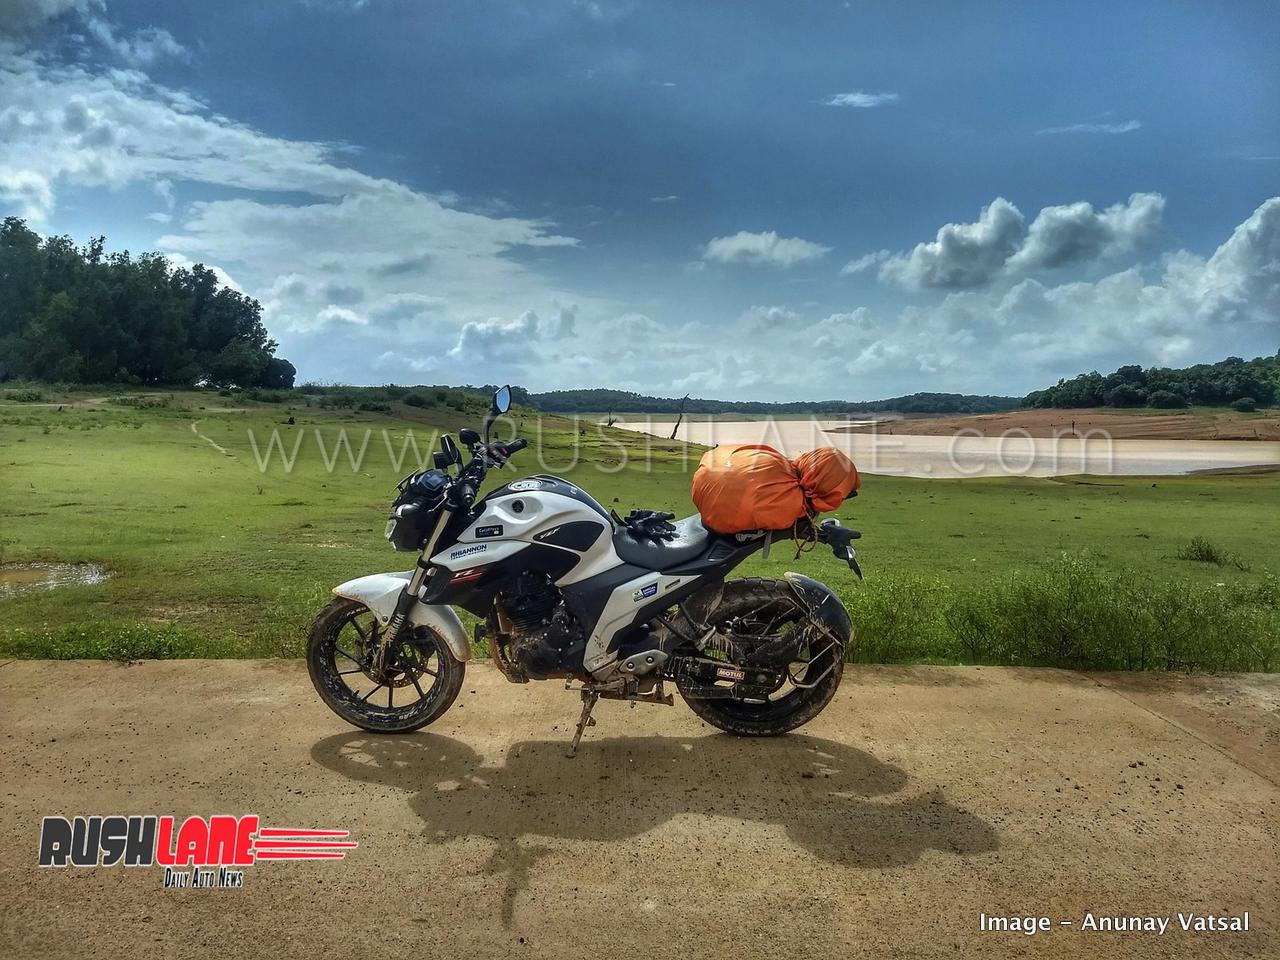 Yamaha FZ25 review by owner after completing 25k kms - A